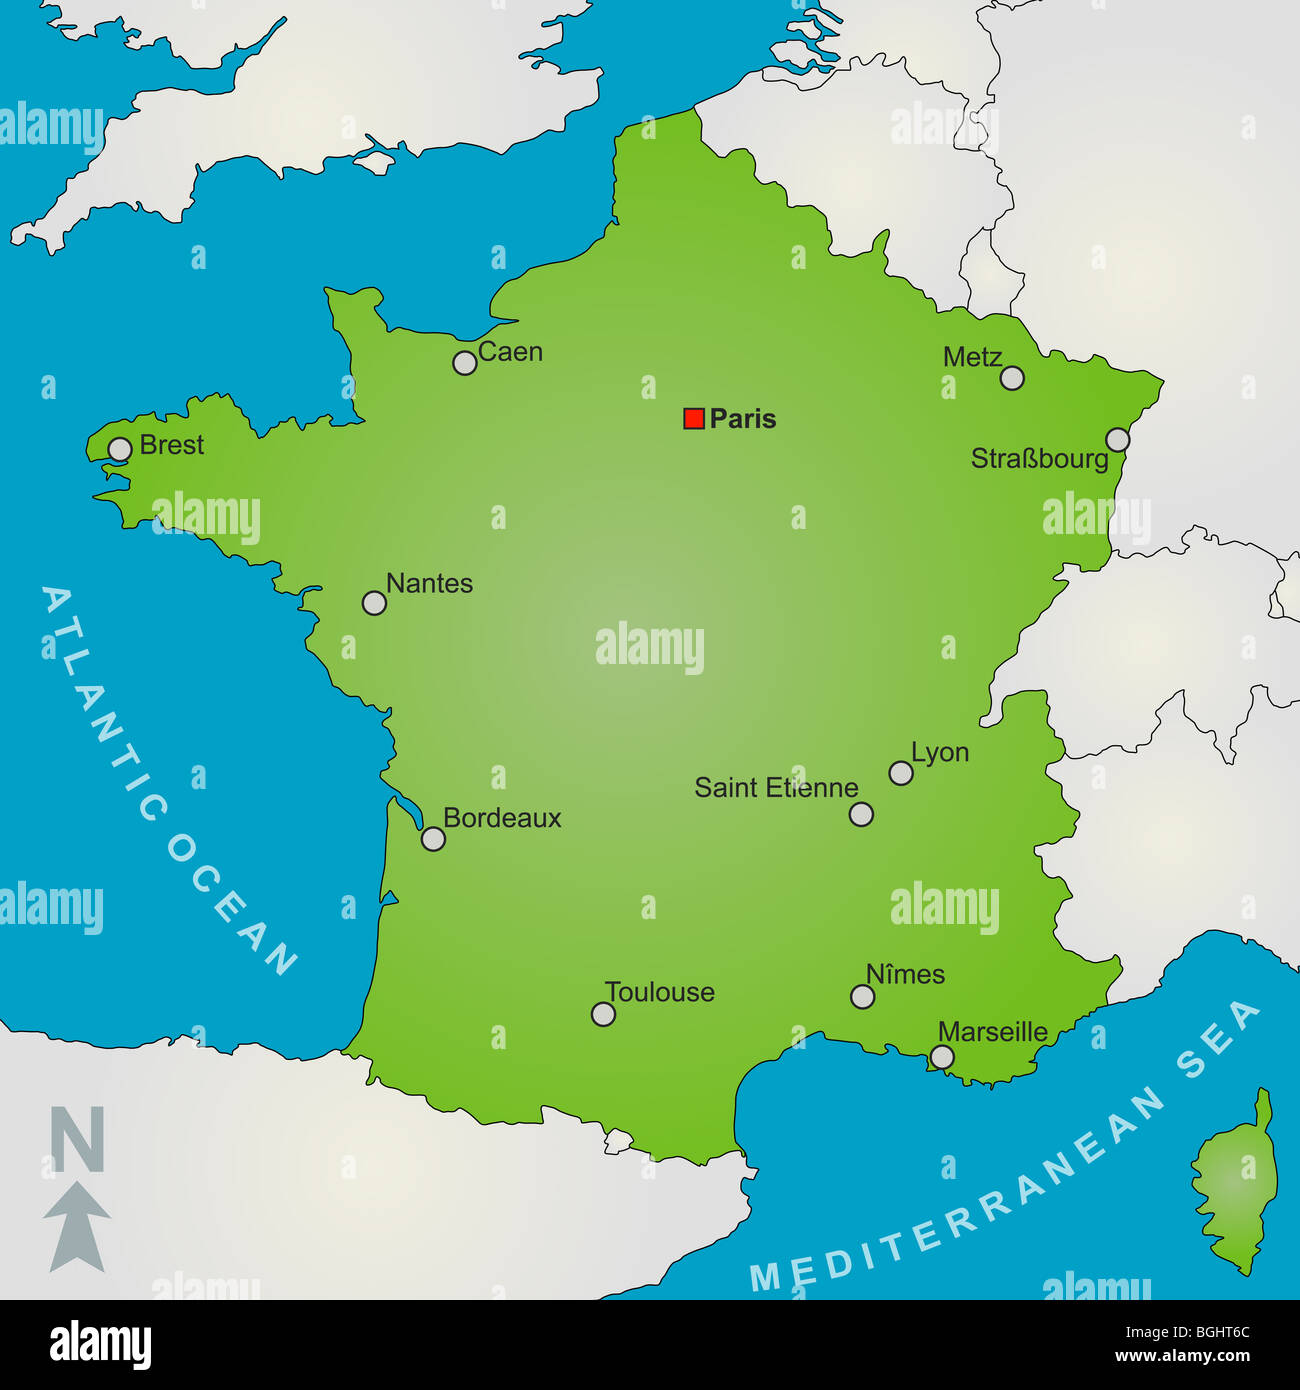 Cities Of France Map.A Stylized Map Of France Showing Several Big Cities And Nearby Stock